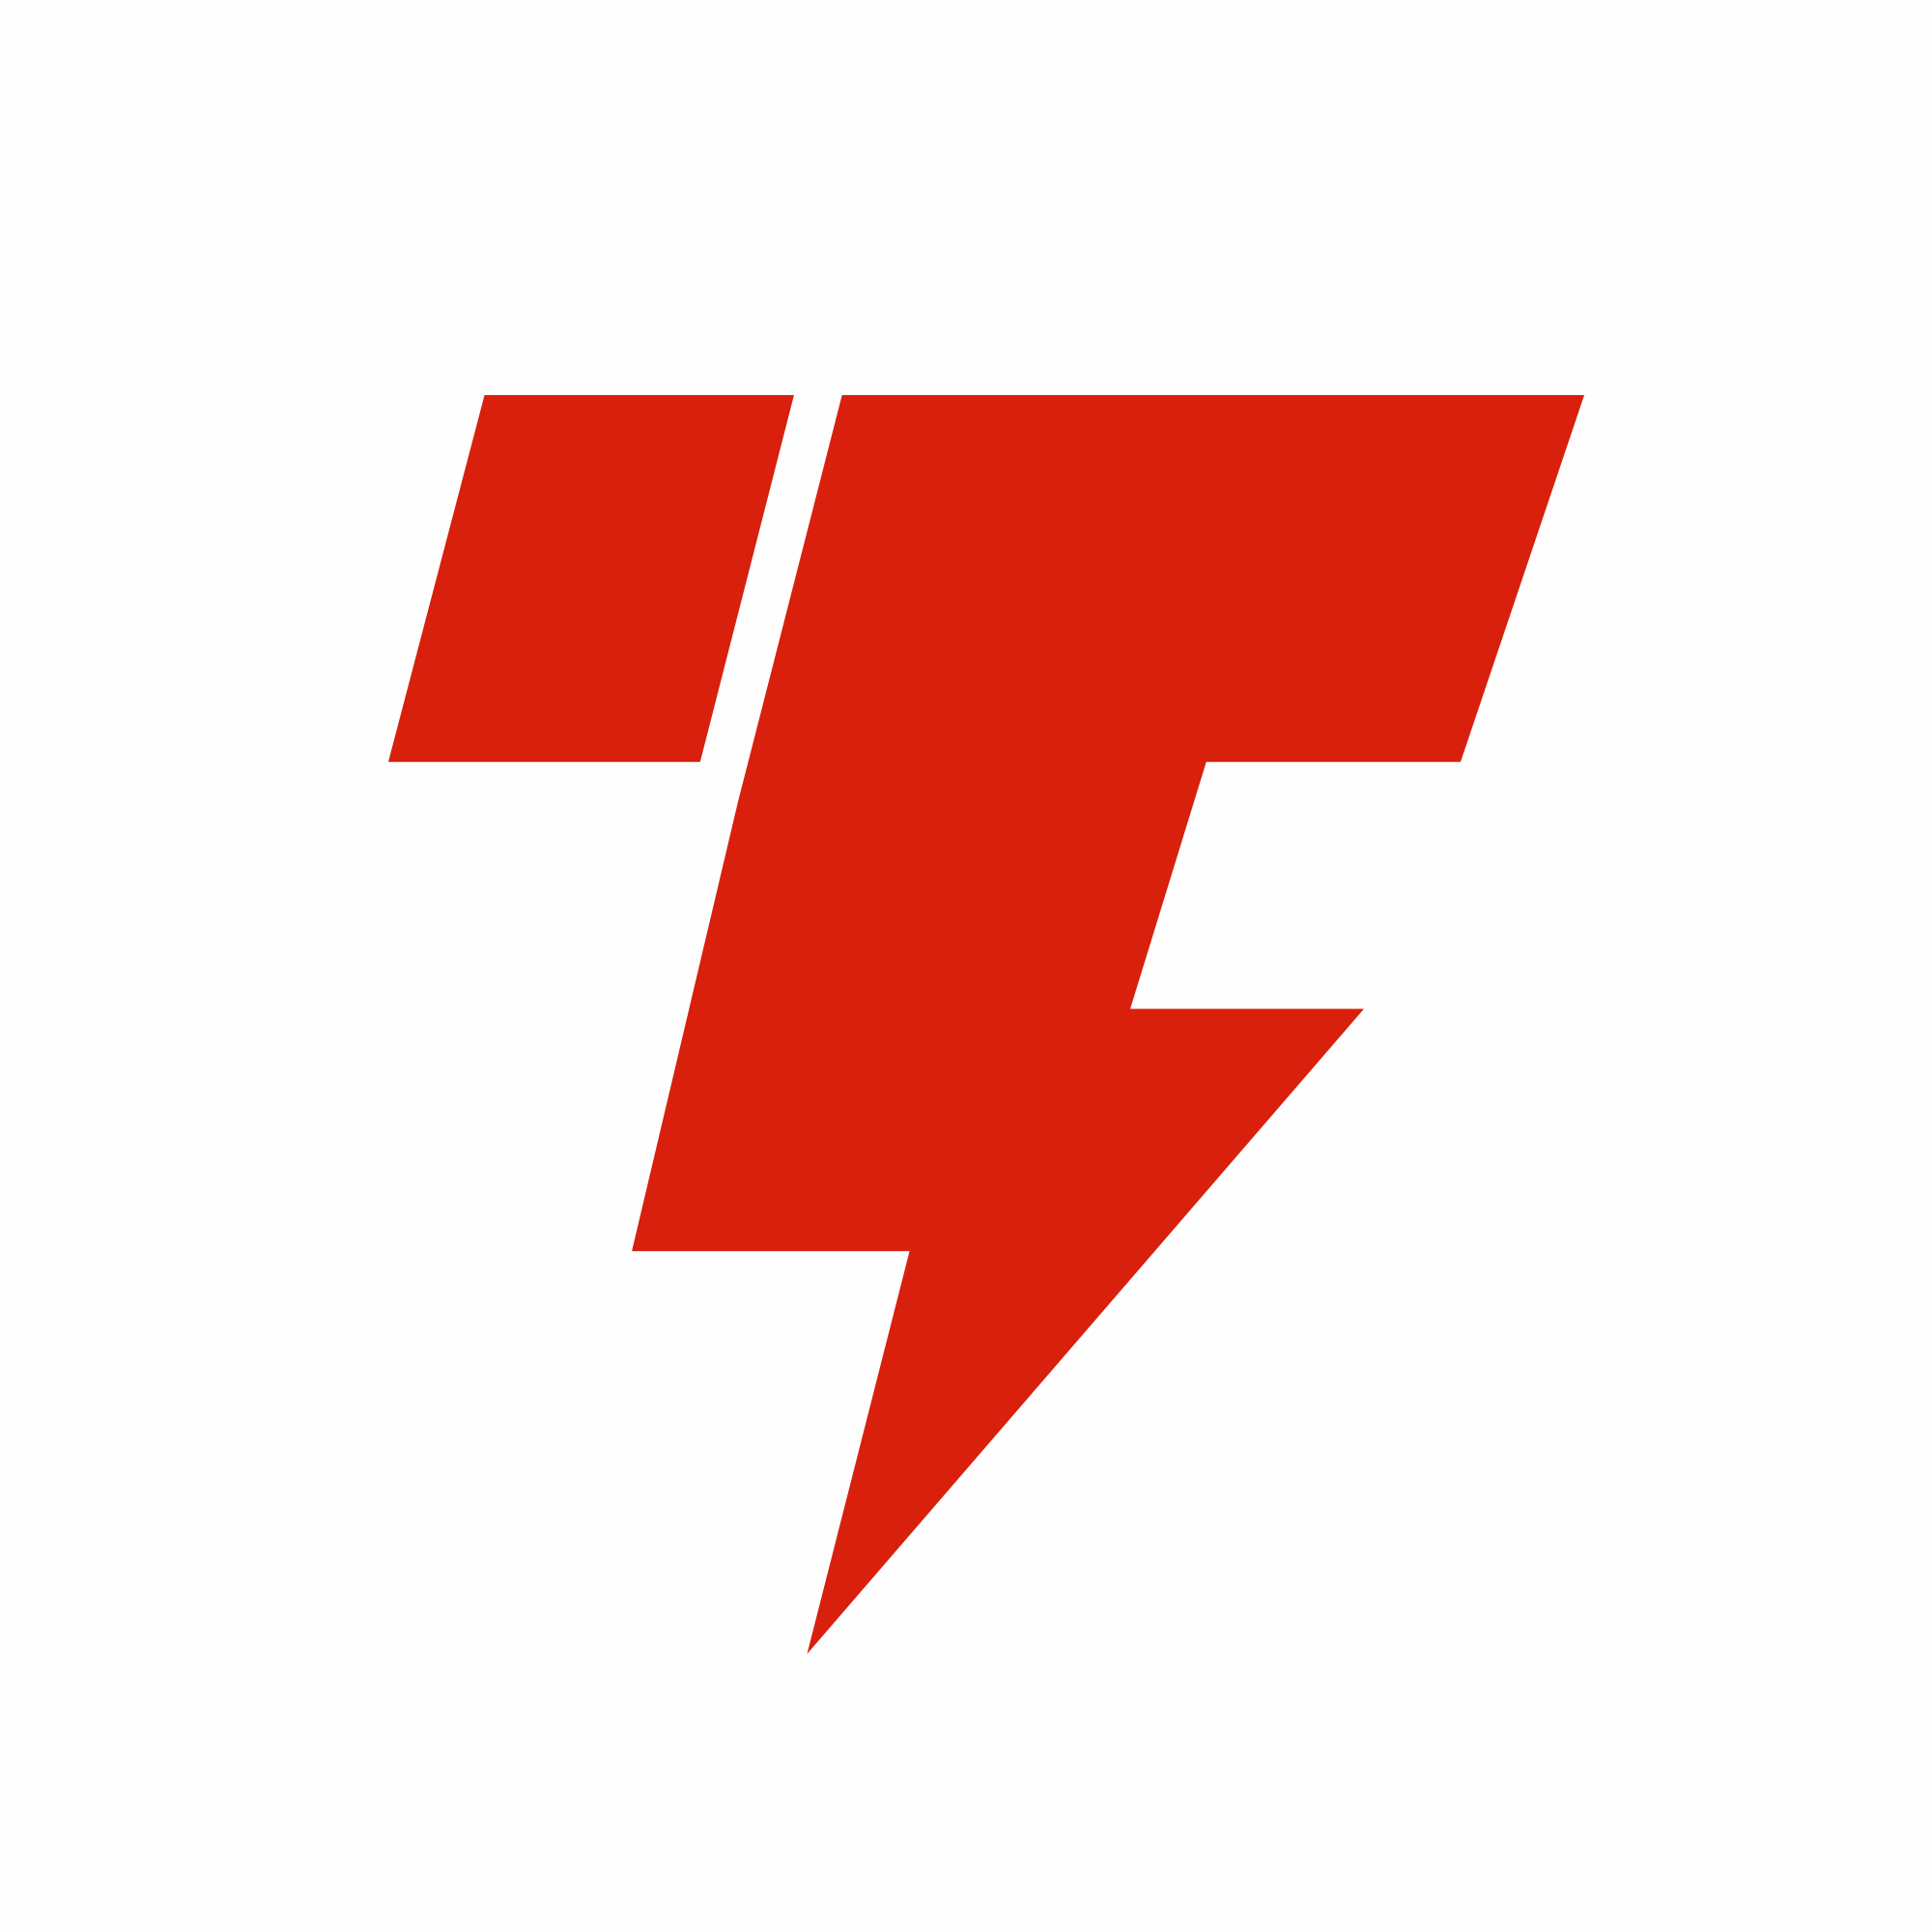 Led Strip Waterproof 16 4ft Waterproof Silicone Led Strip Lights 7000k Daylight Tape